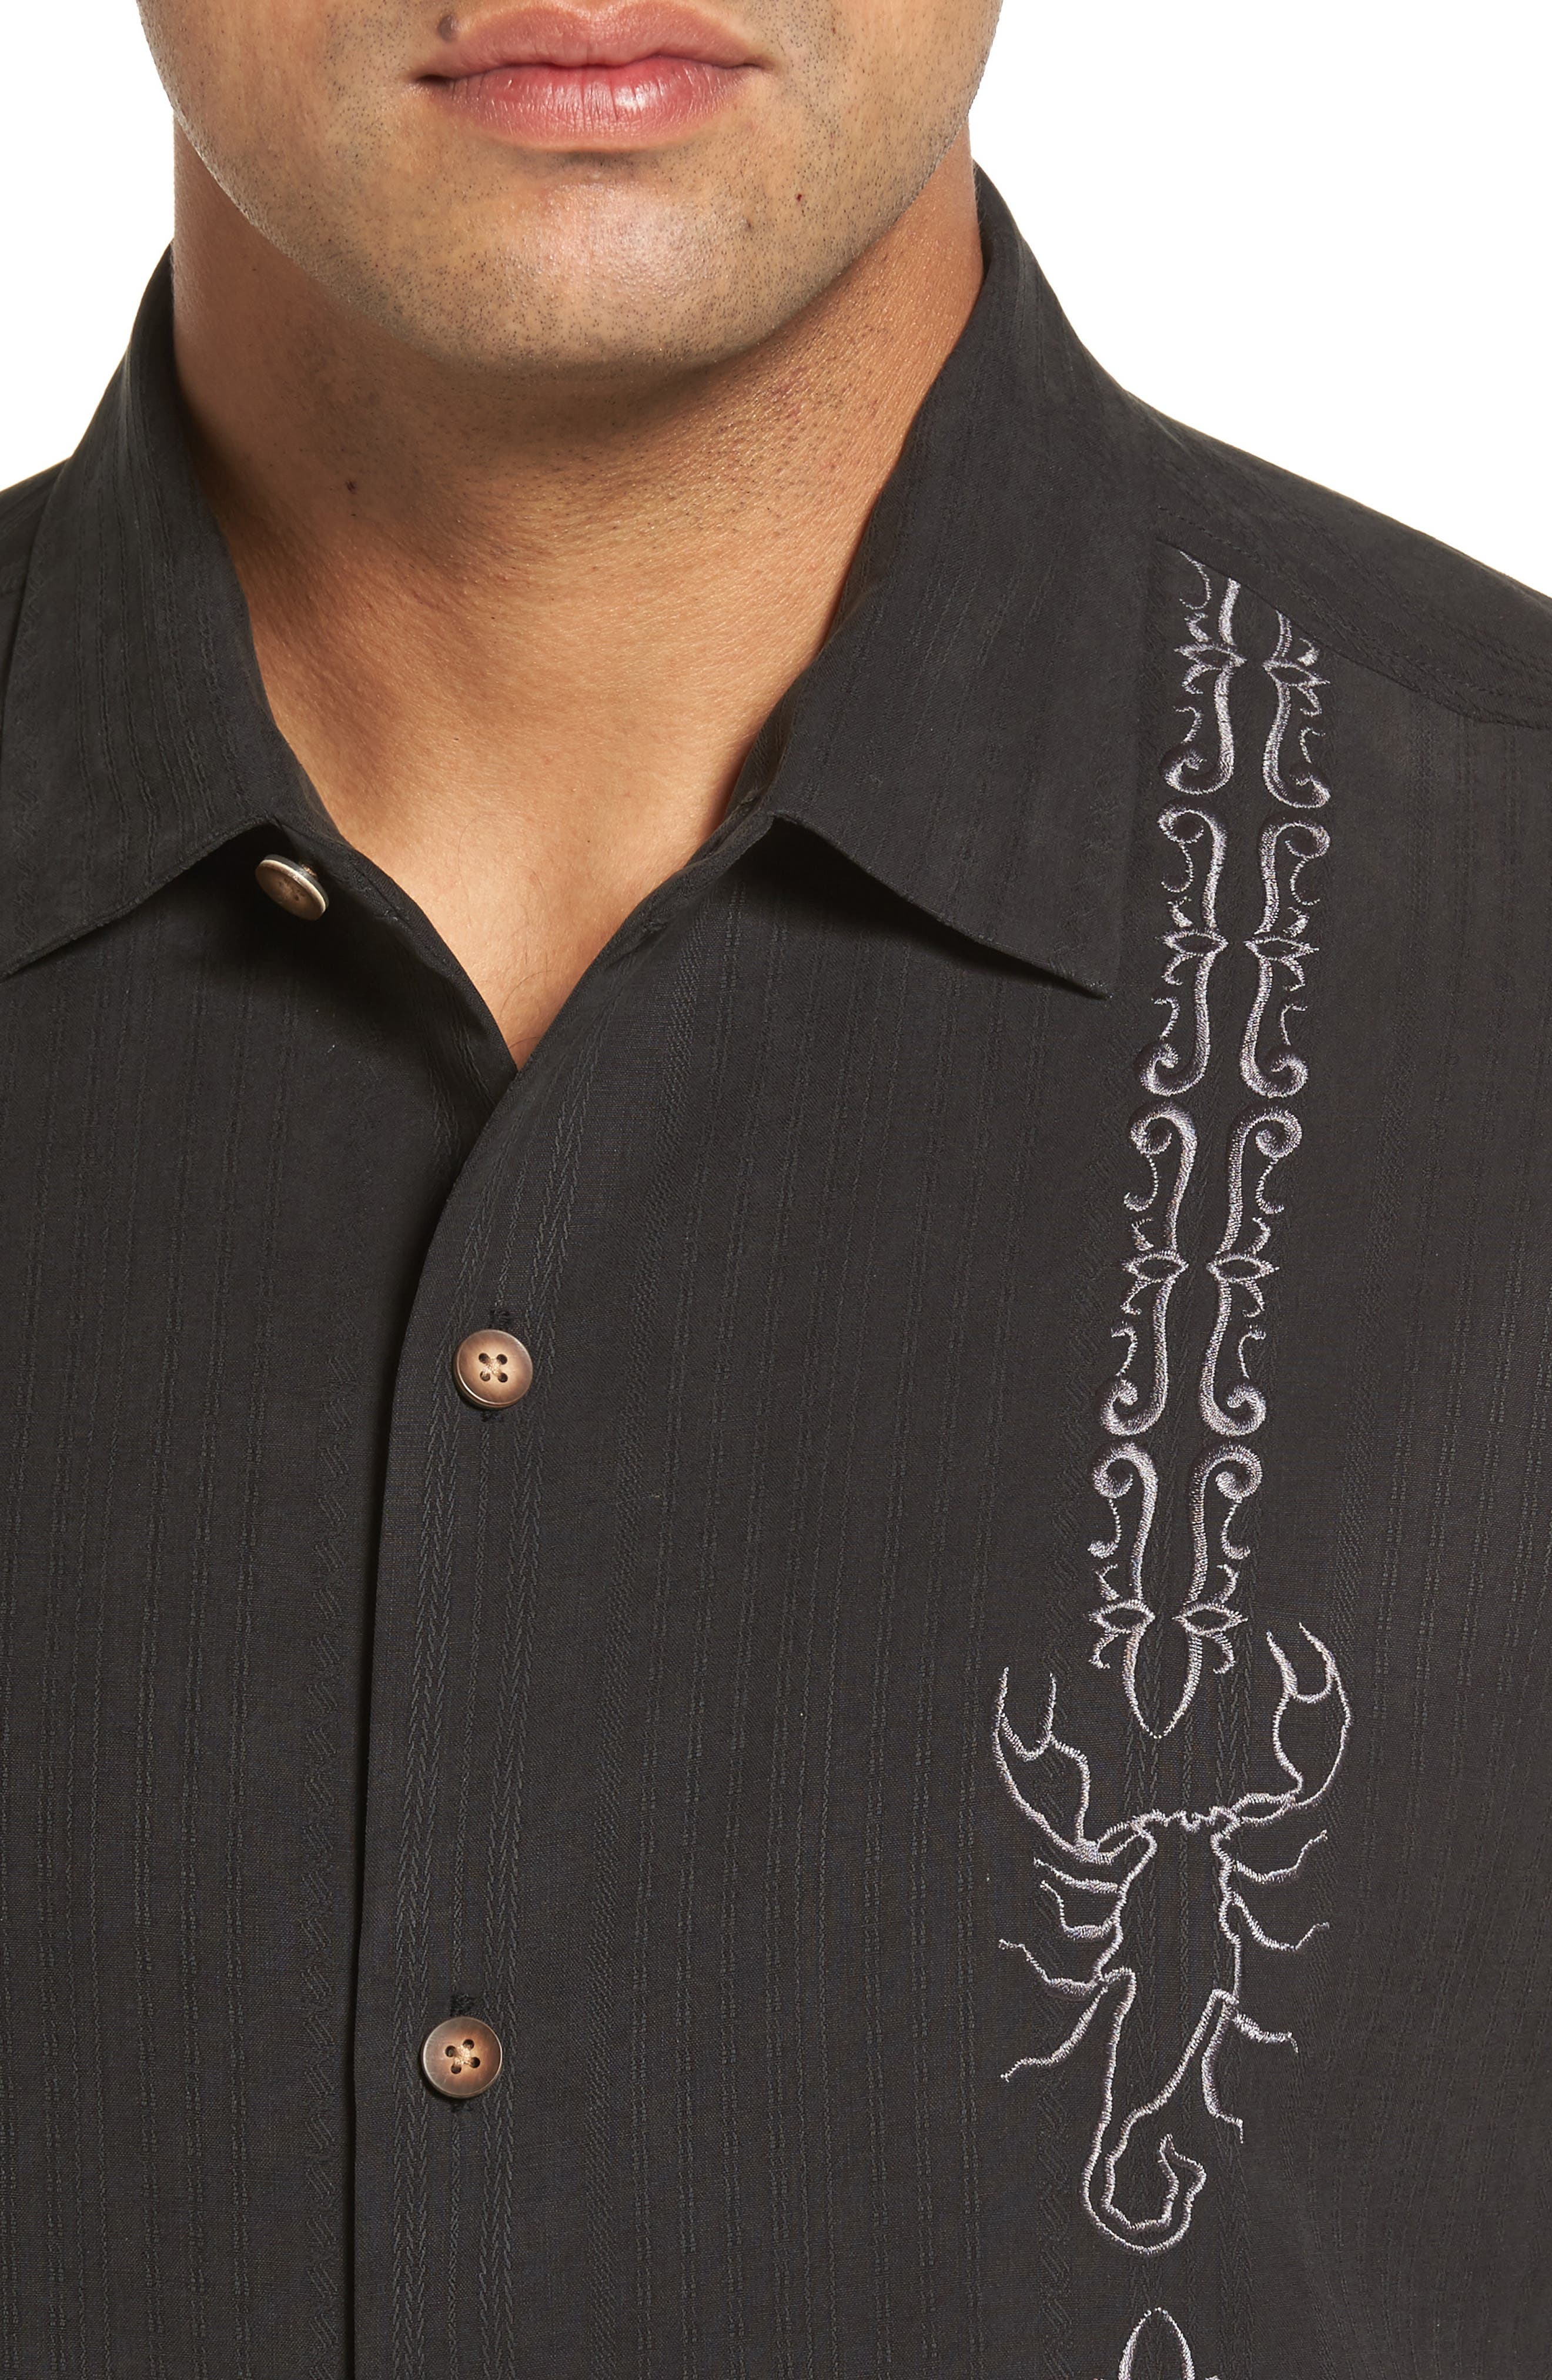 Drink Your Poison Embroidered Silk Woven Shirt,                             Alternate thumbnail 4, color,                             001